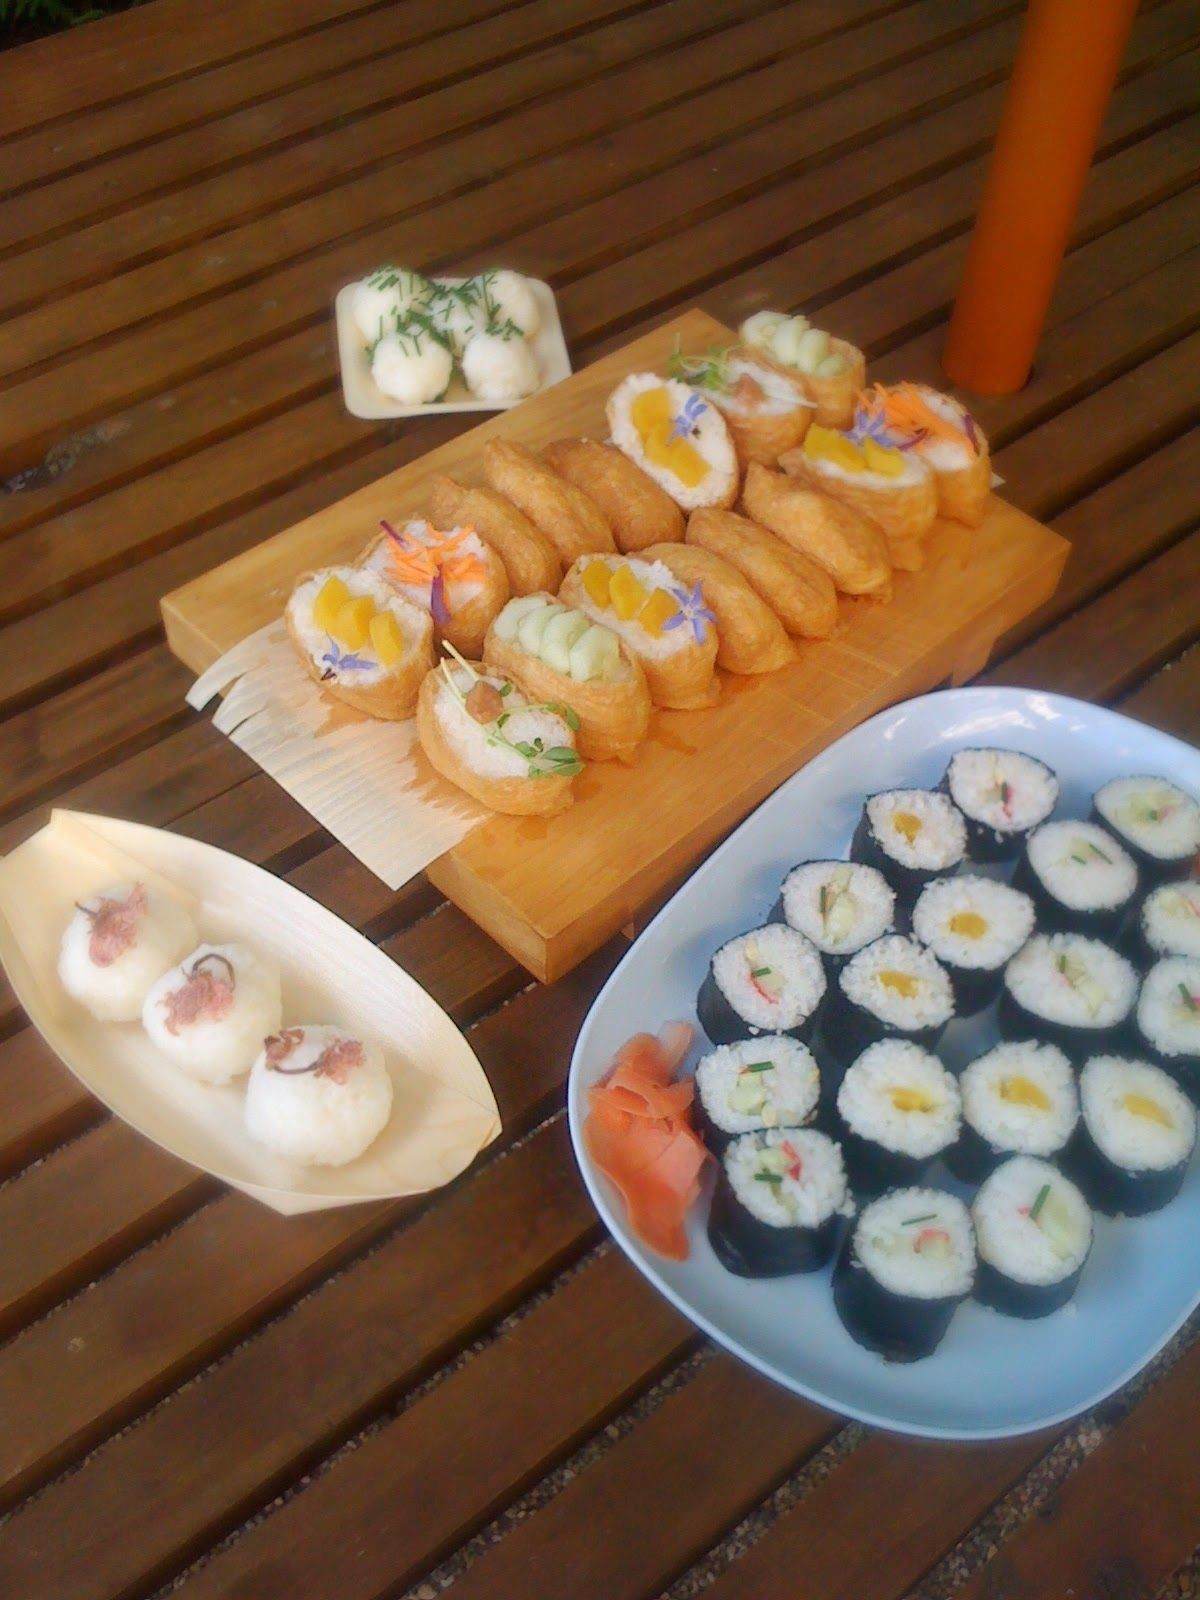 Cooking with flowers: Vegan Sushi and onigiri (rice balls) with flowers